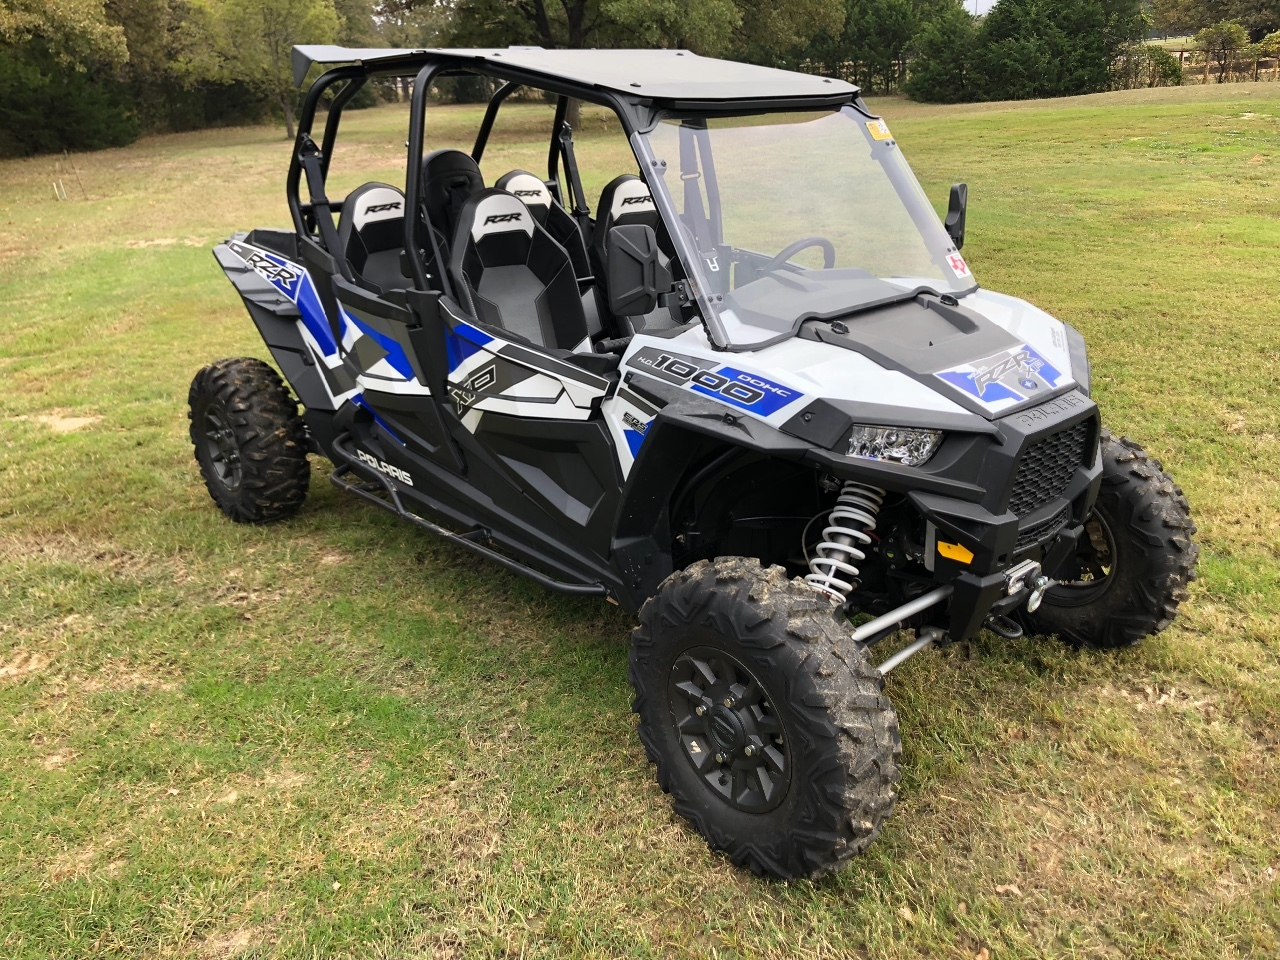 Used Rzr Xp 4 1000 Eps For Sale - Polaris ATV,Side by Side